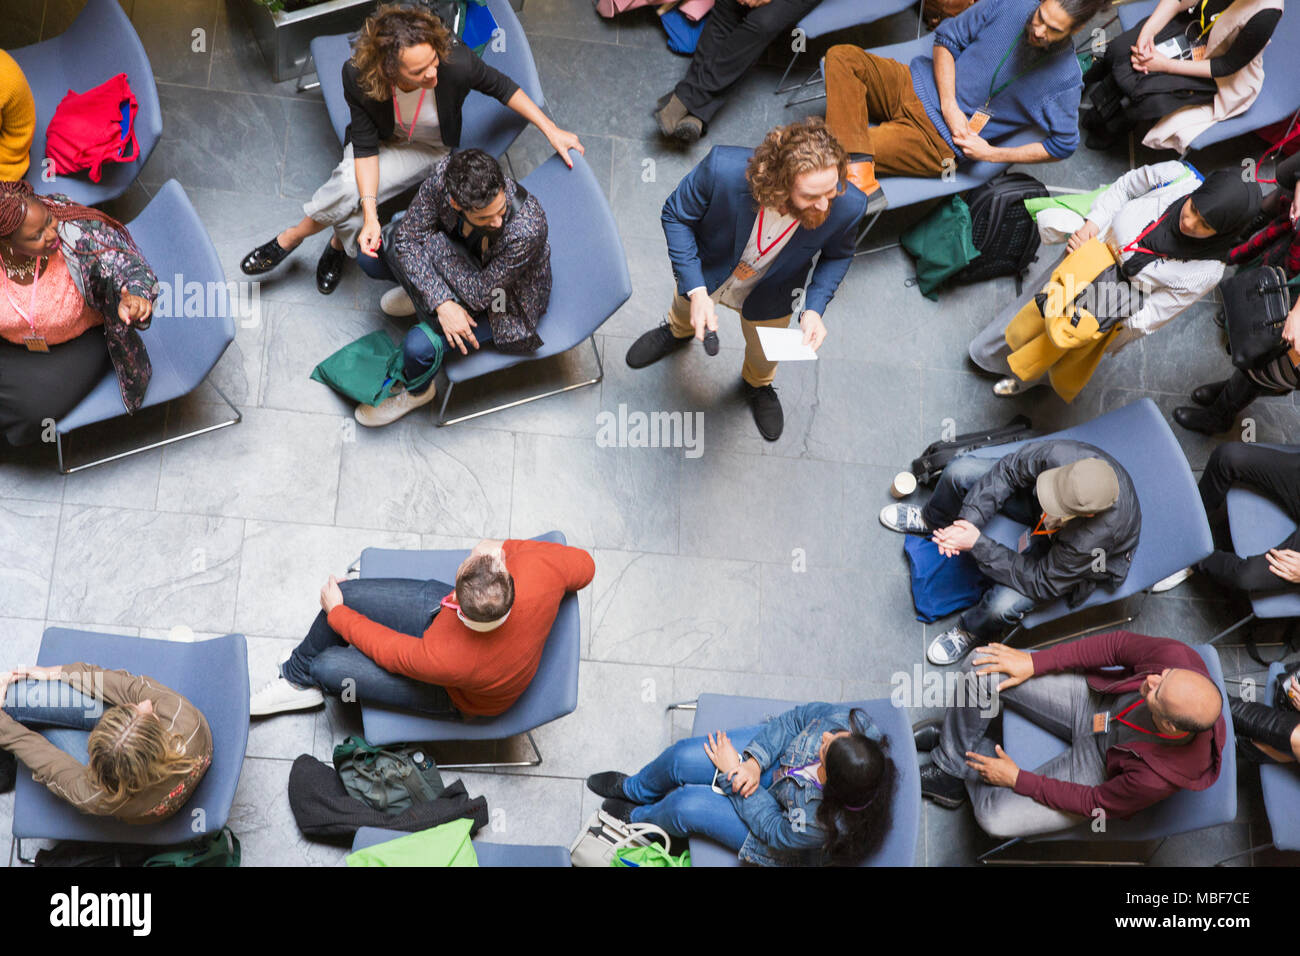 Overhead view conference audience listening to speaker with microphone - Stock Image